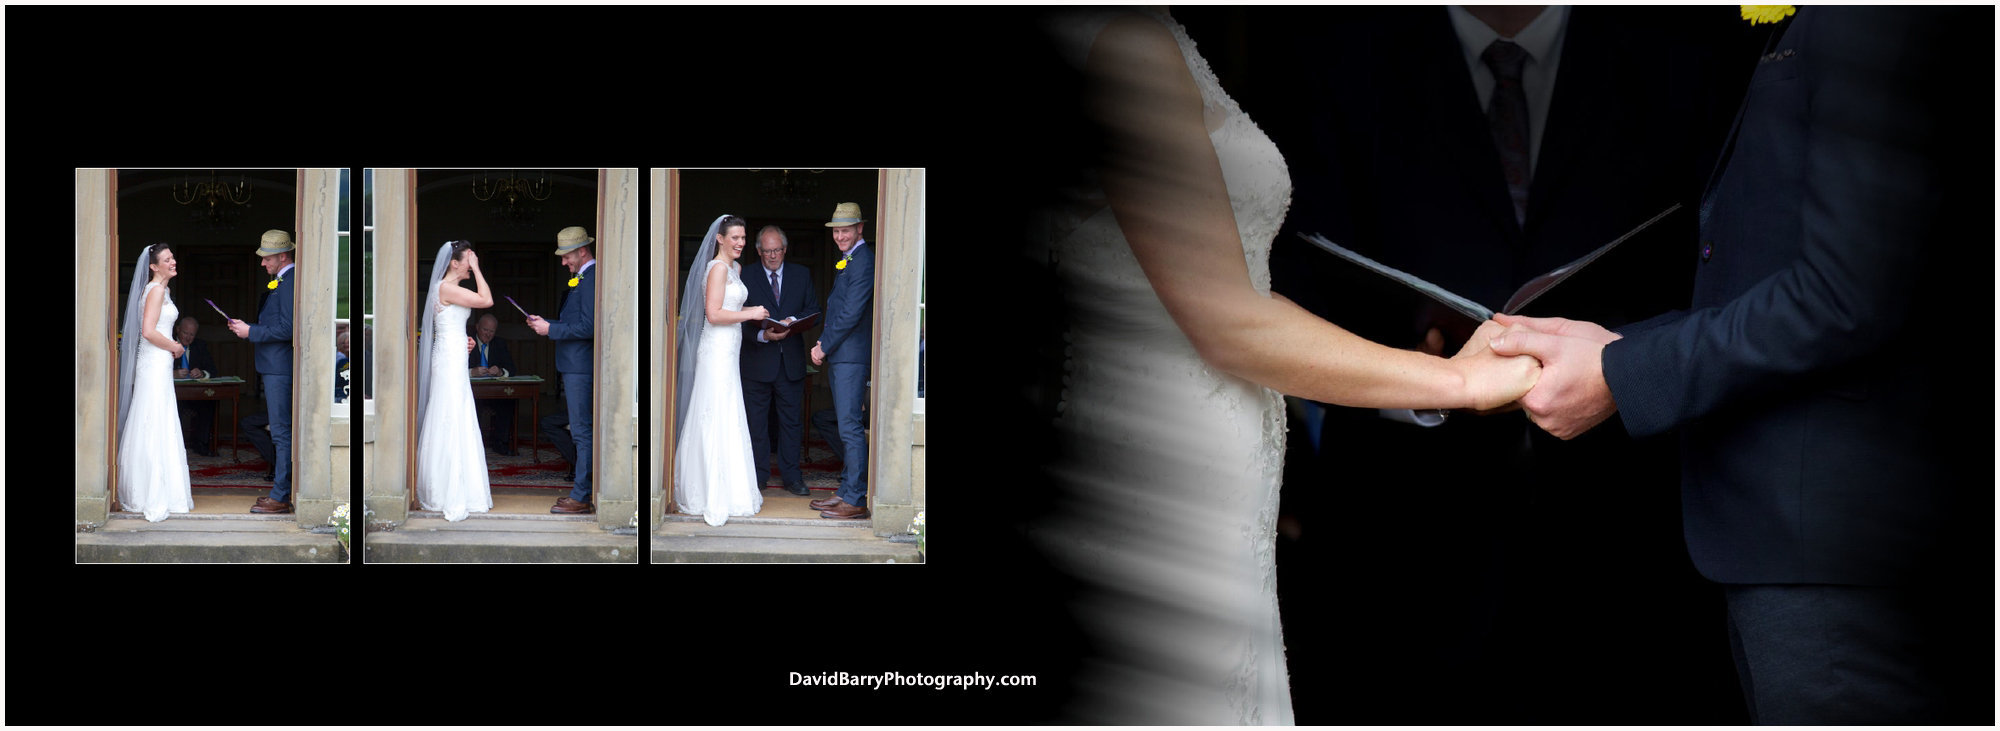 My vows 2